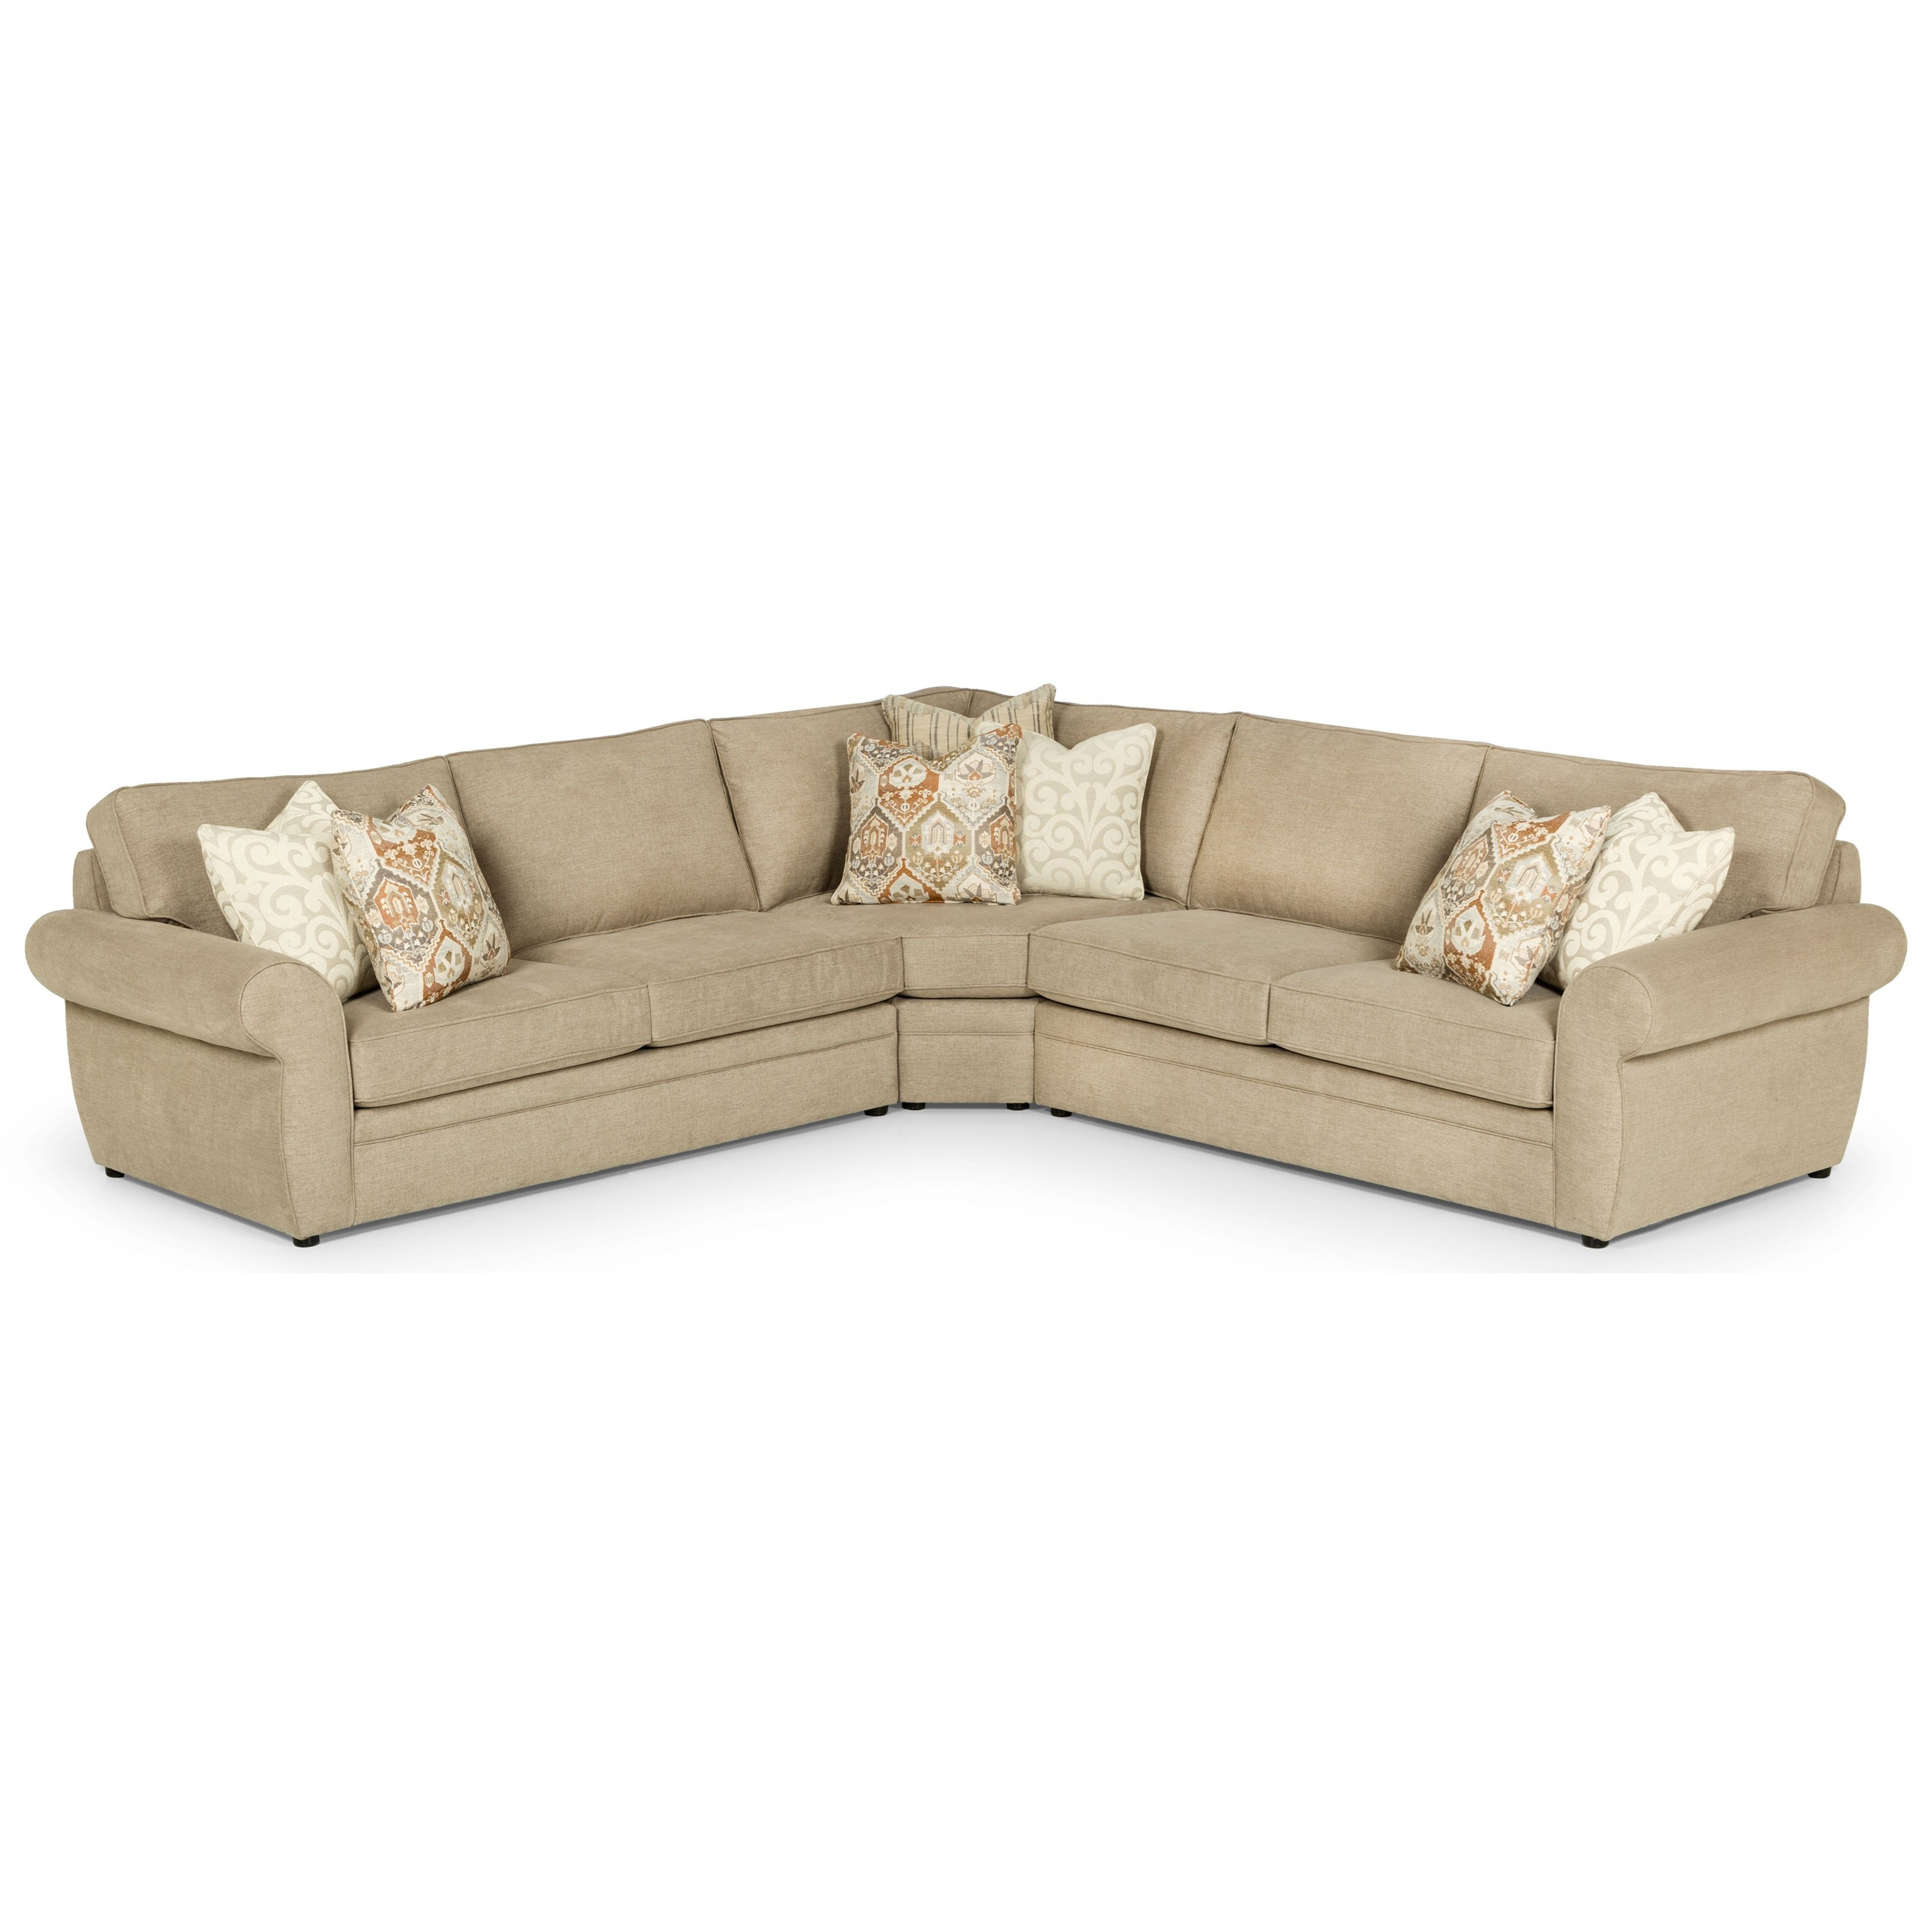 554 4-Seat Sectional Sofa by Stanton at Wilson's Furniture